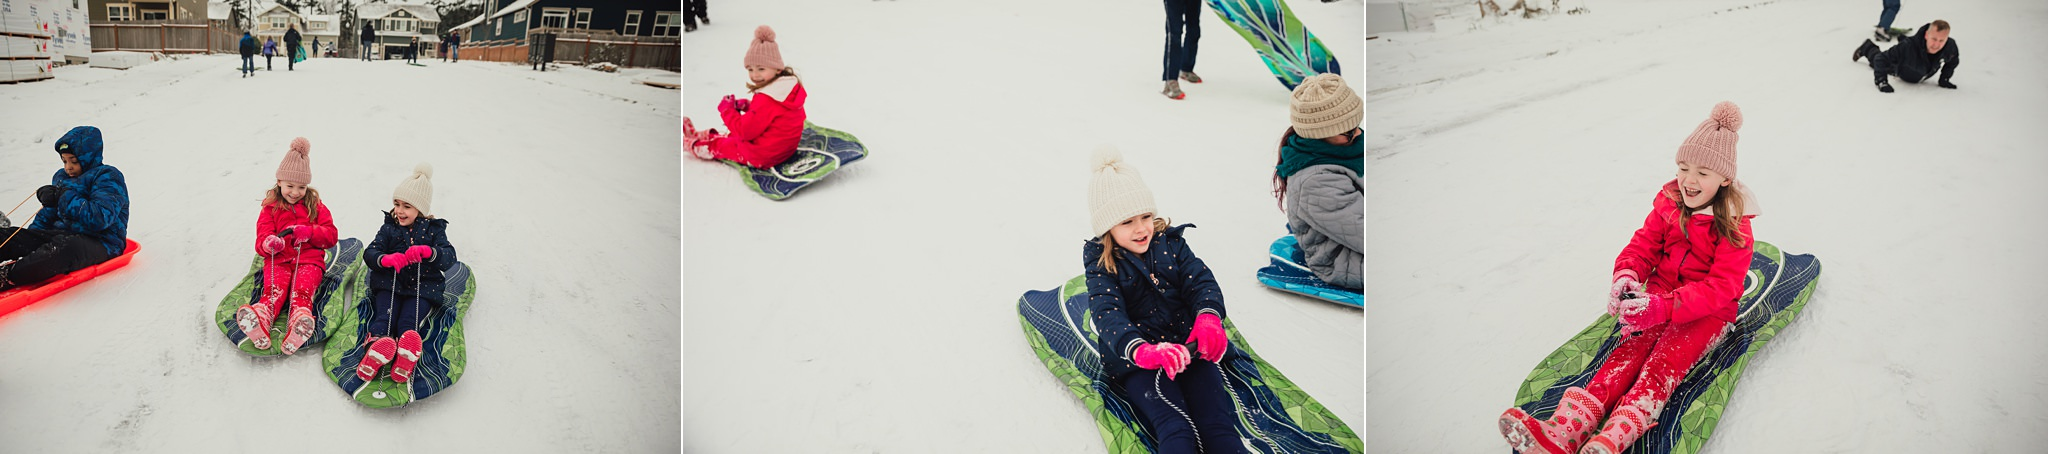 girls sled on hill on Whidbey Island | Seattle photographer